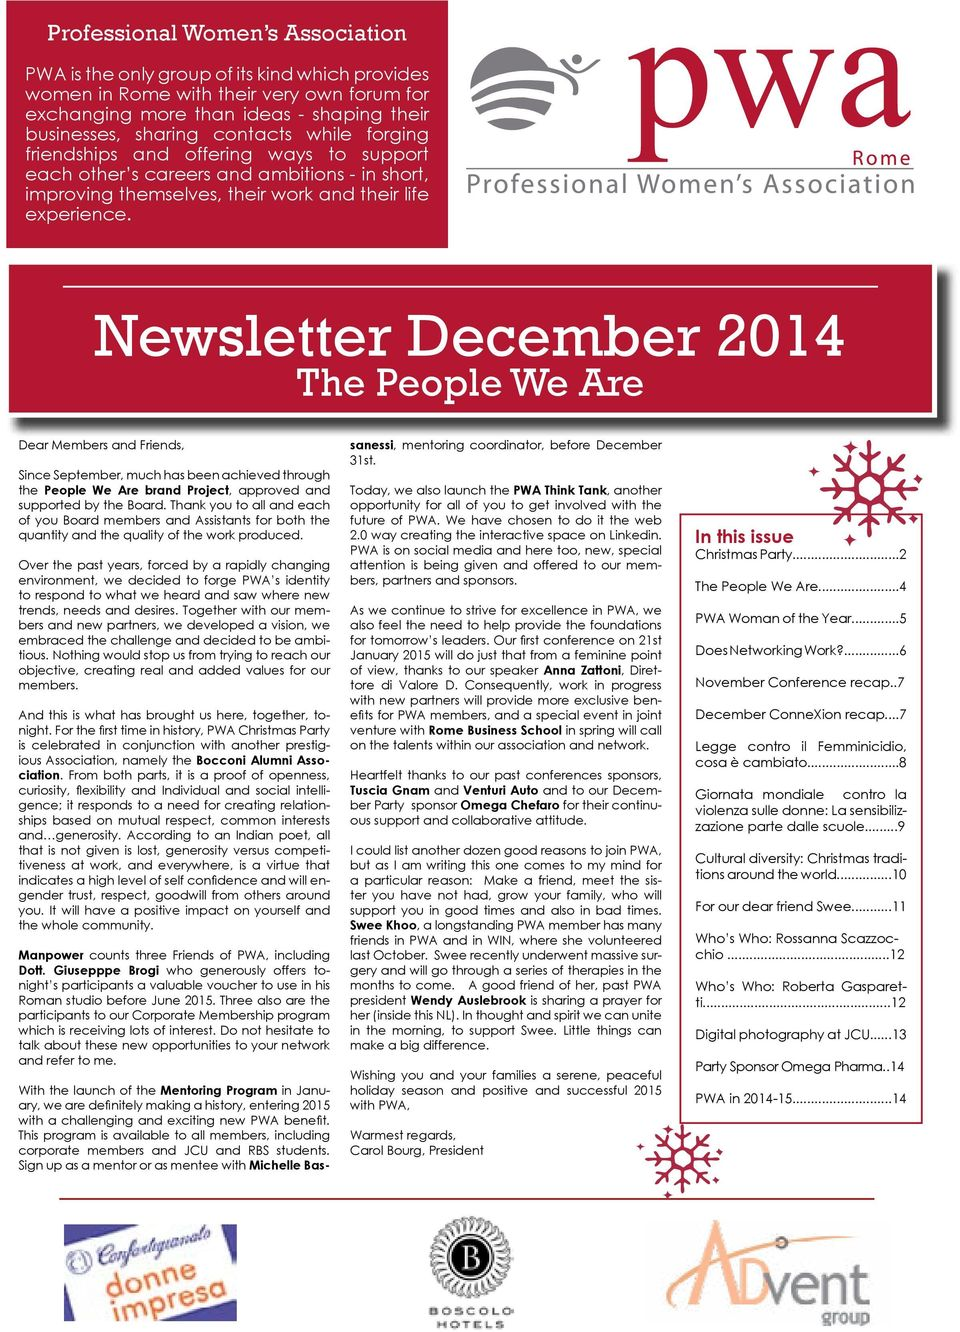 Newsletter December 2014 The People We Are Dear Members and Friends, Since September, much has been achieved through the People We Are brand Project, approved and supported by the Board.